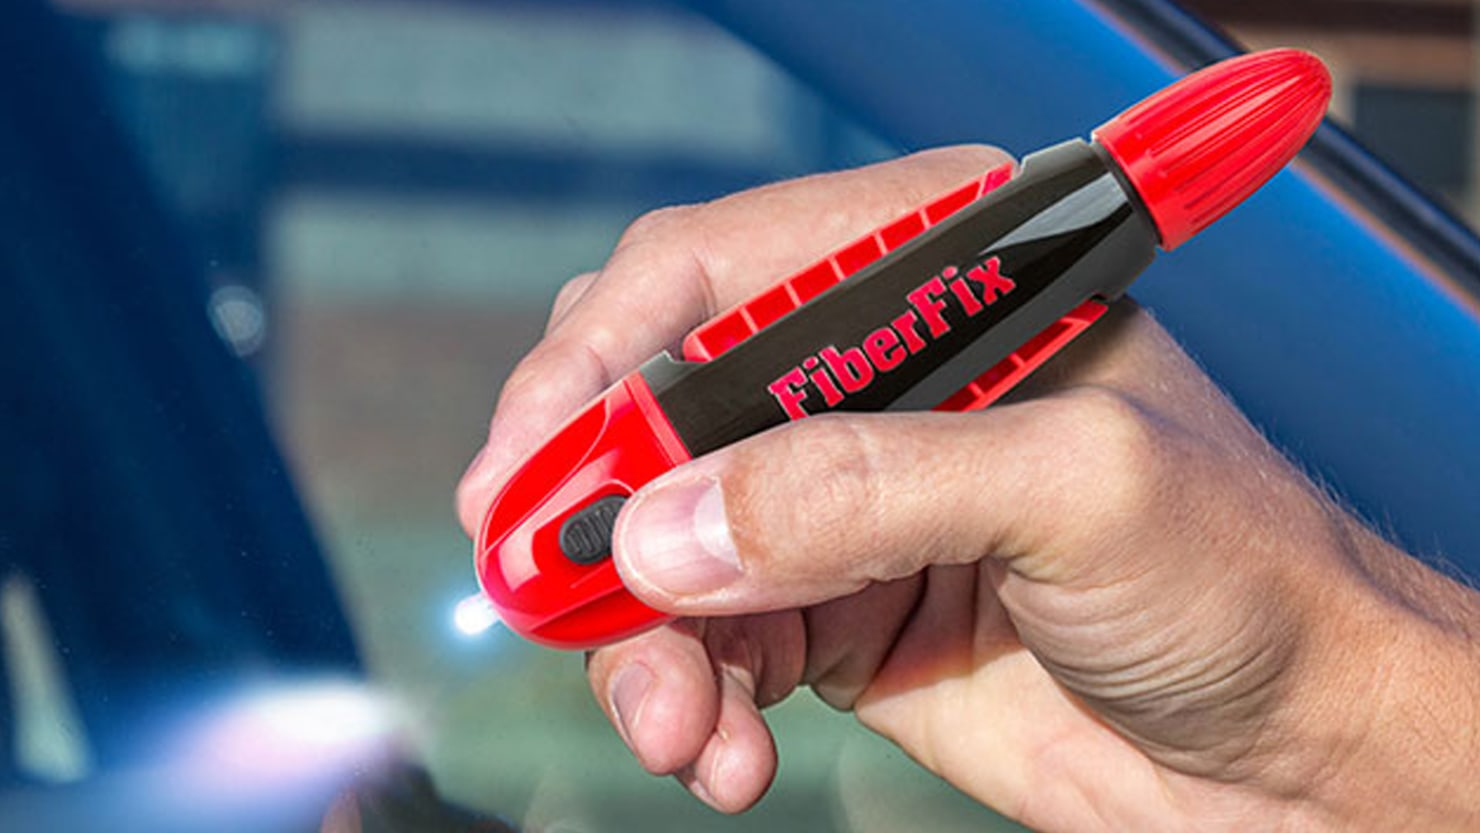 Fix Anything With This Handy Repair Tool